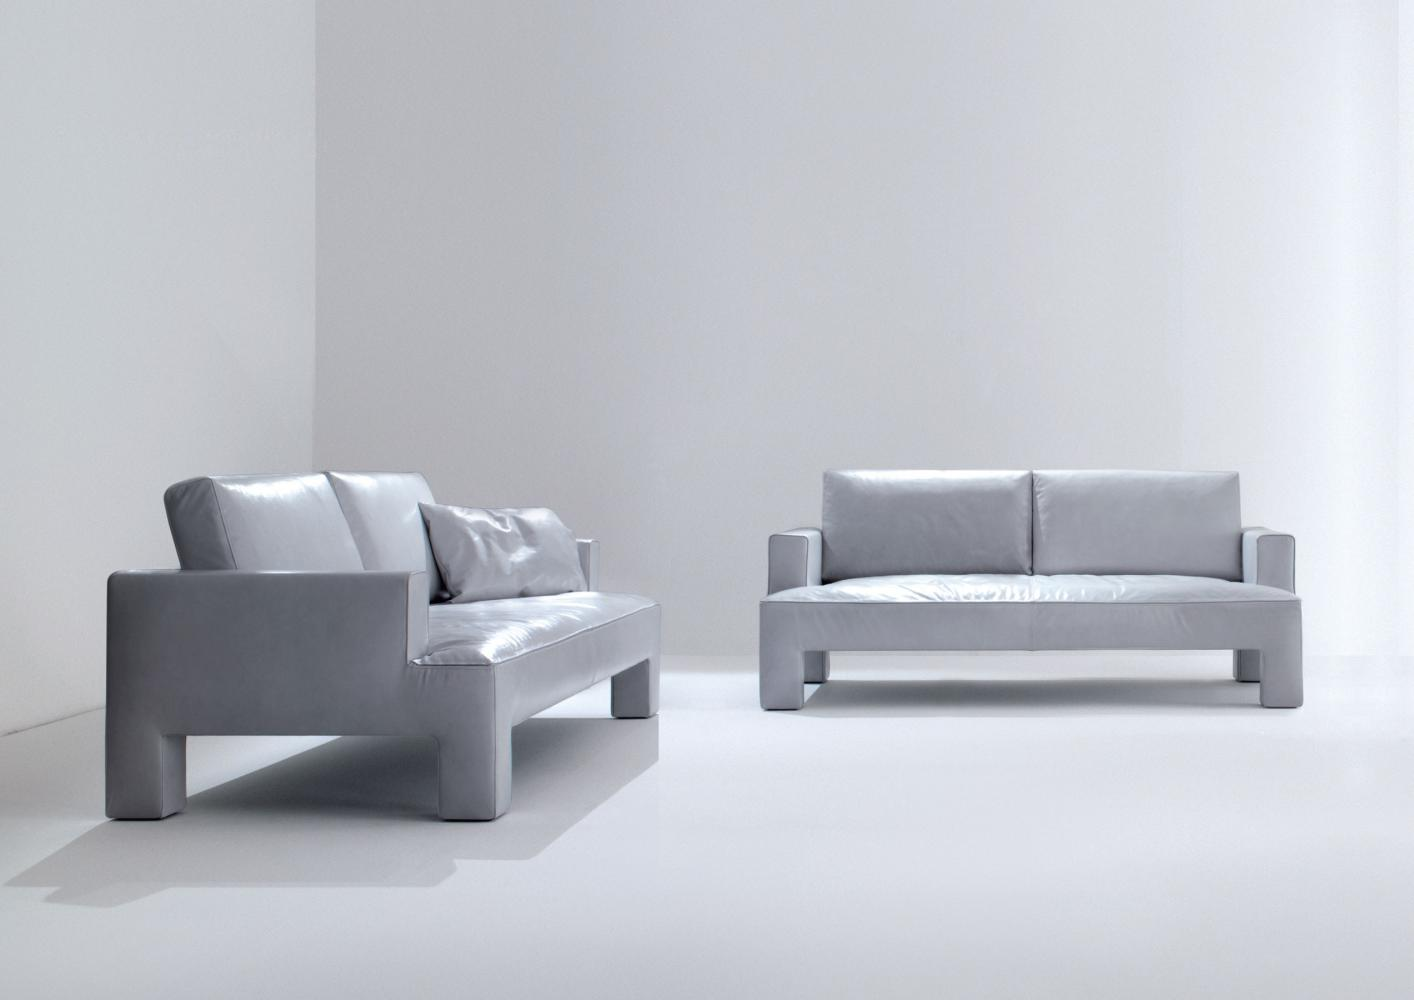 Two and three seater modern luxury sofa in leather or fabric